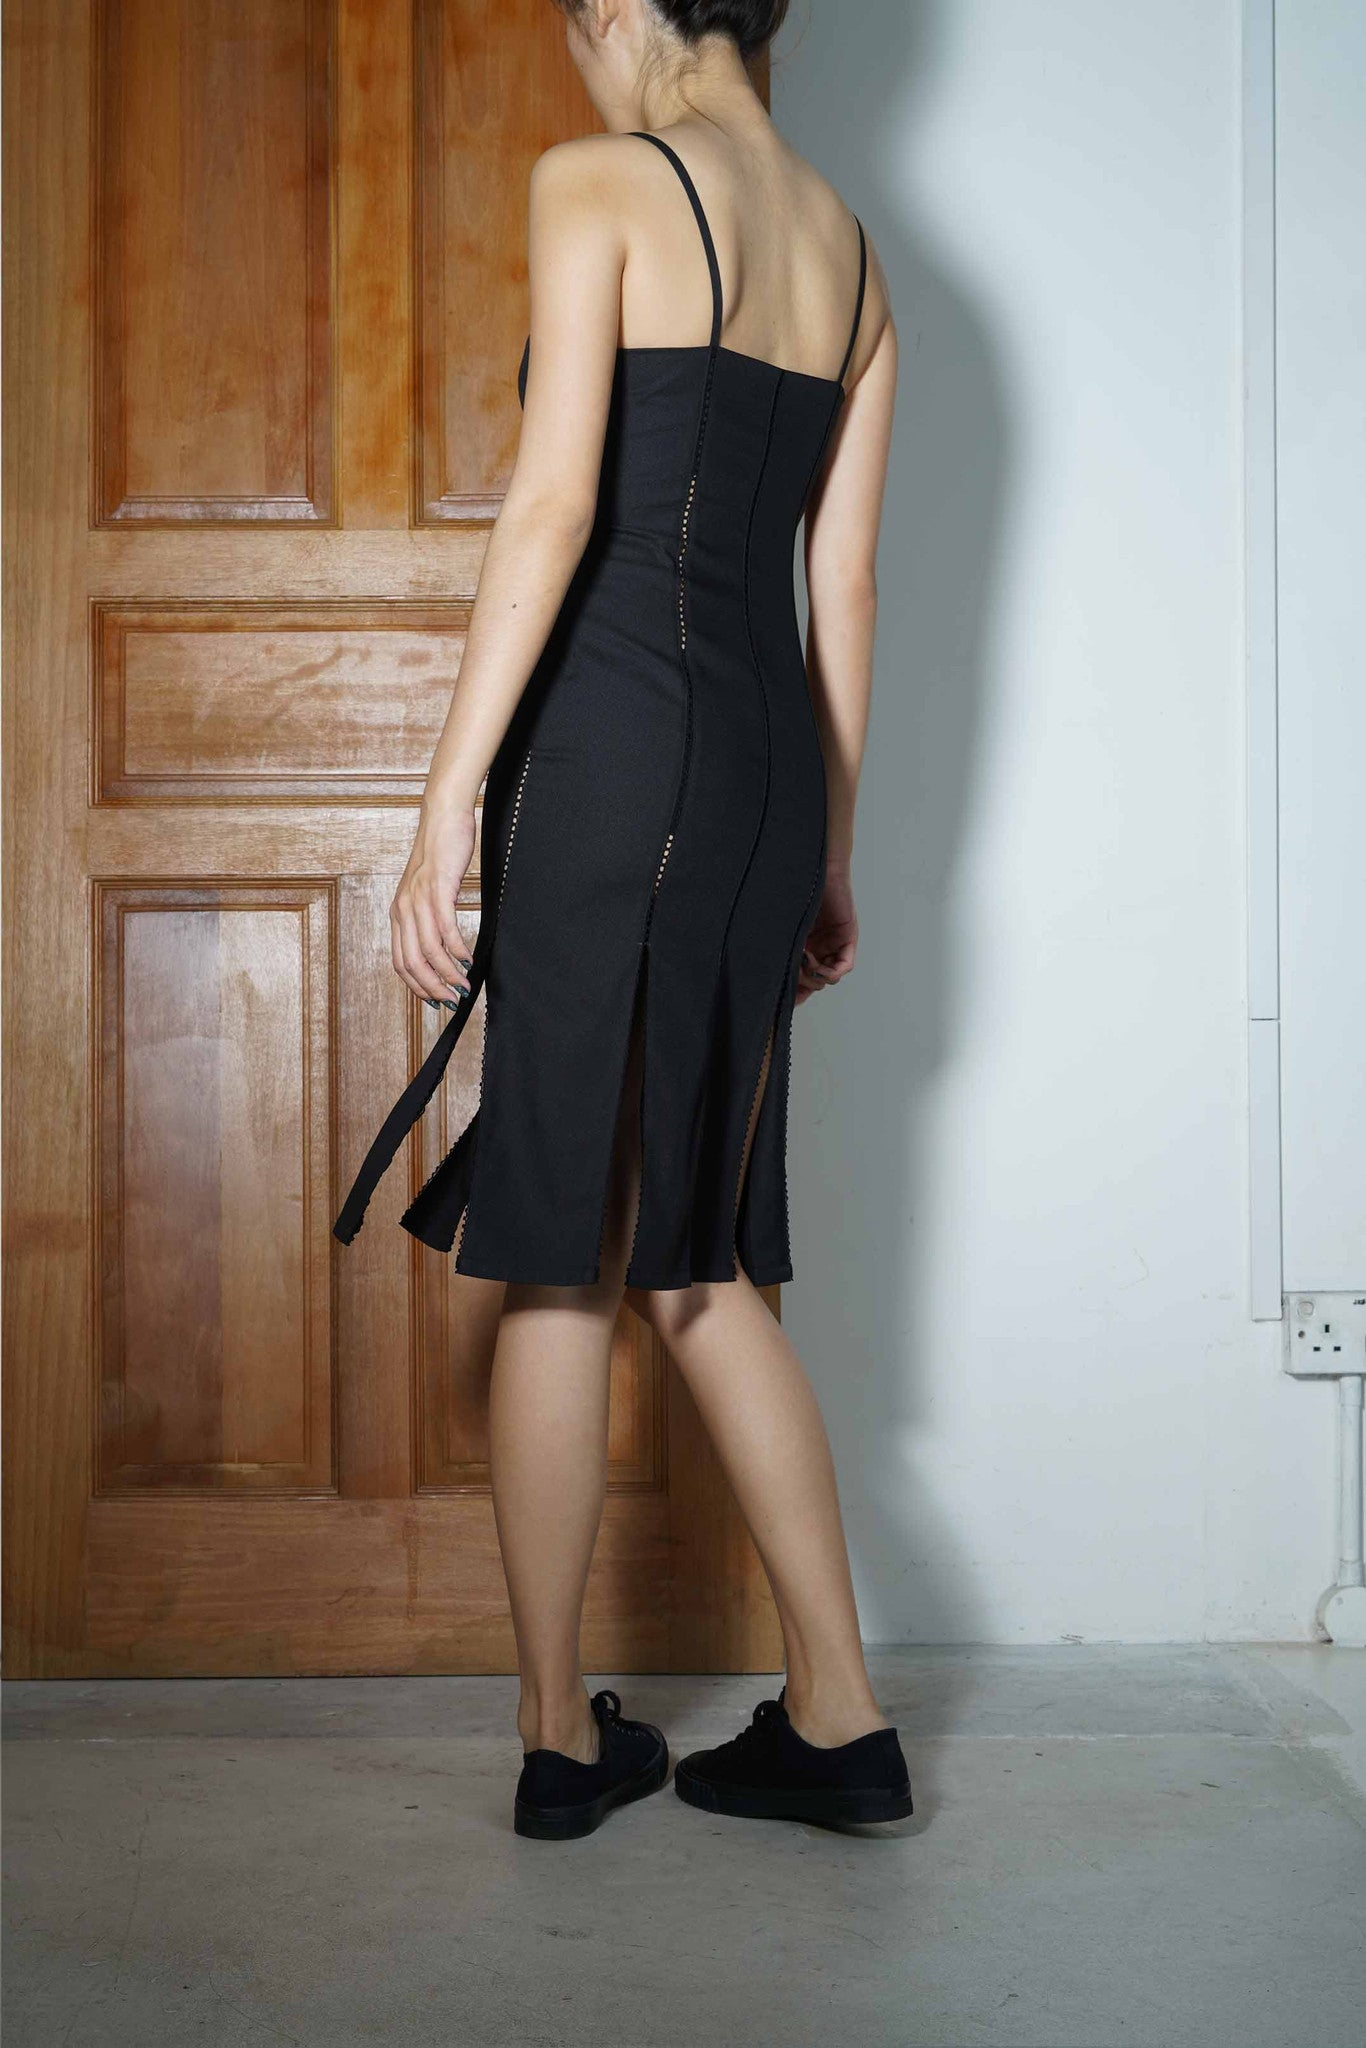 Peekapoo Peneled Slip Dress #67 - Black